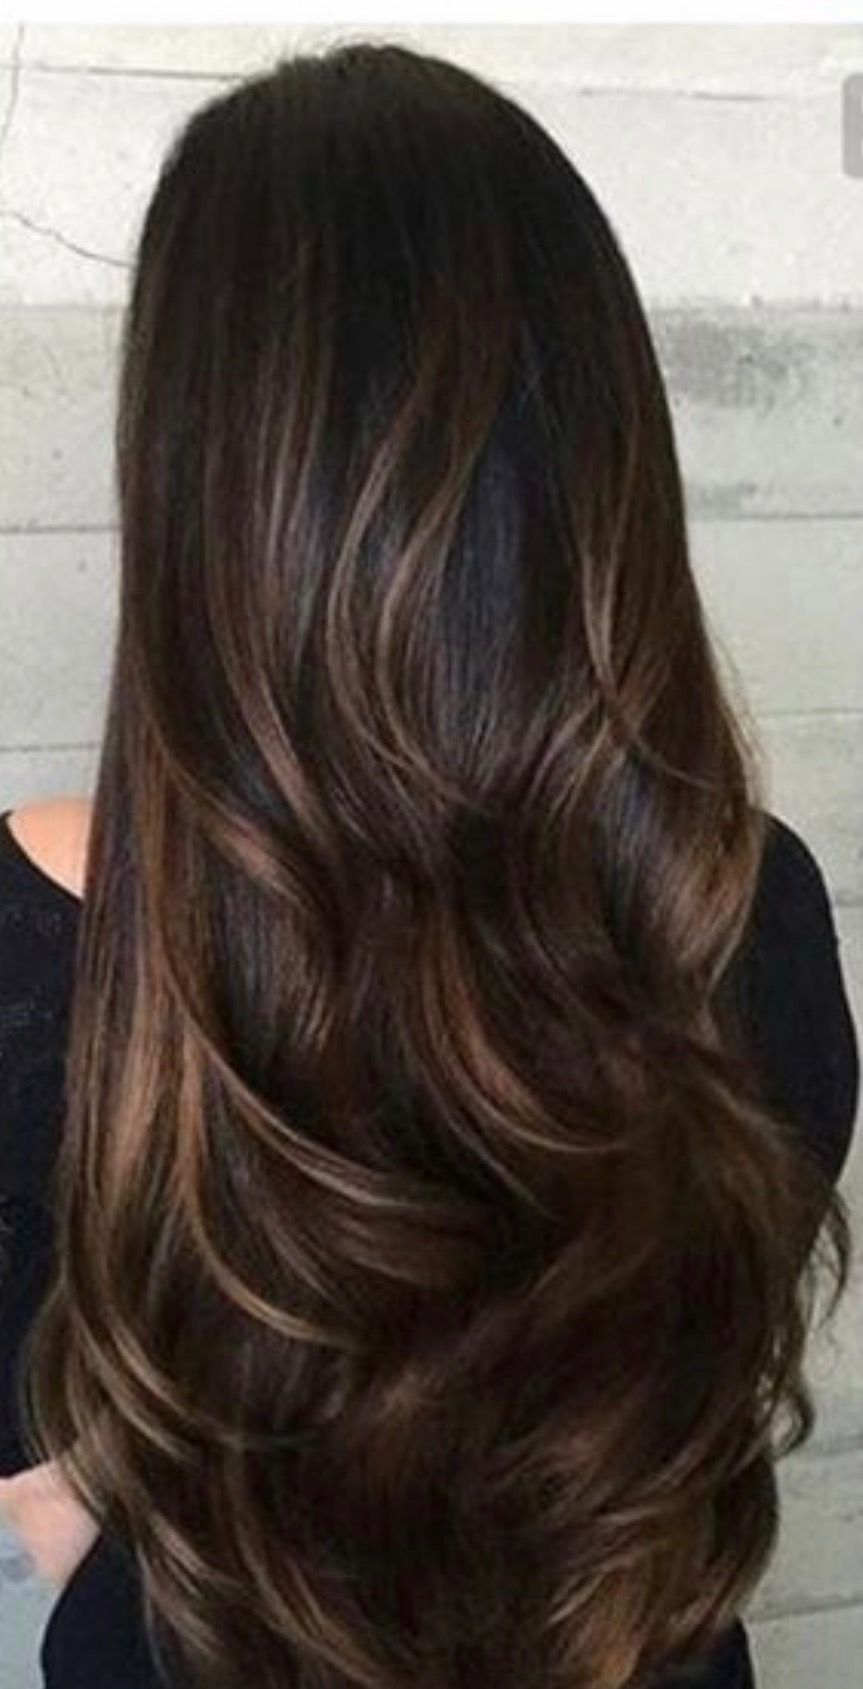 Pin By Sophie Mkrtchyan On Hair Pinterest Hair Coloring Hair